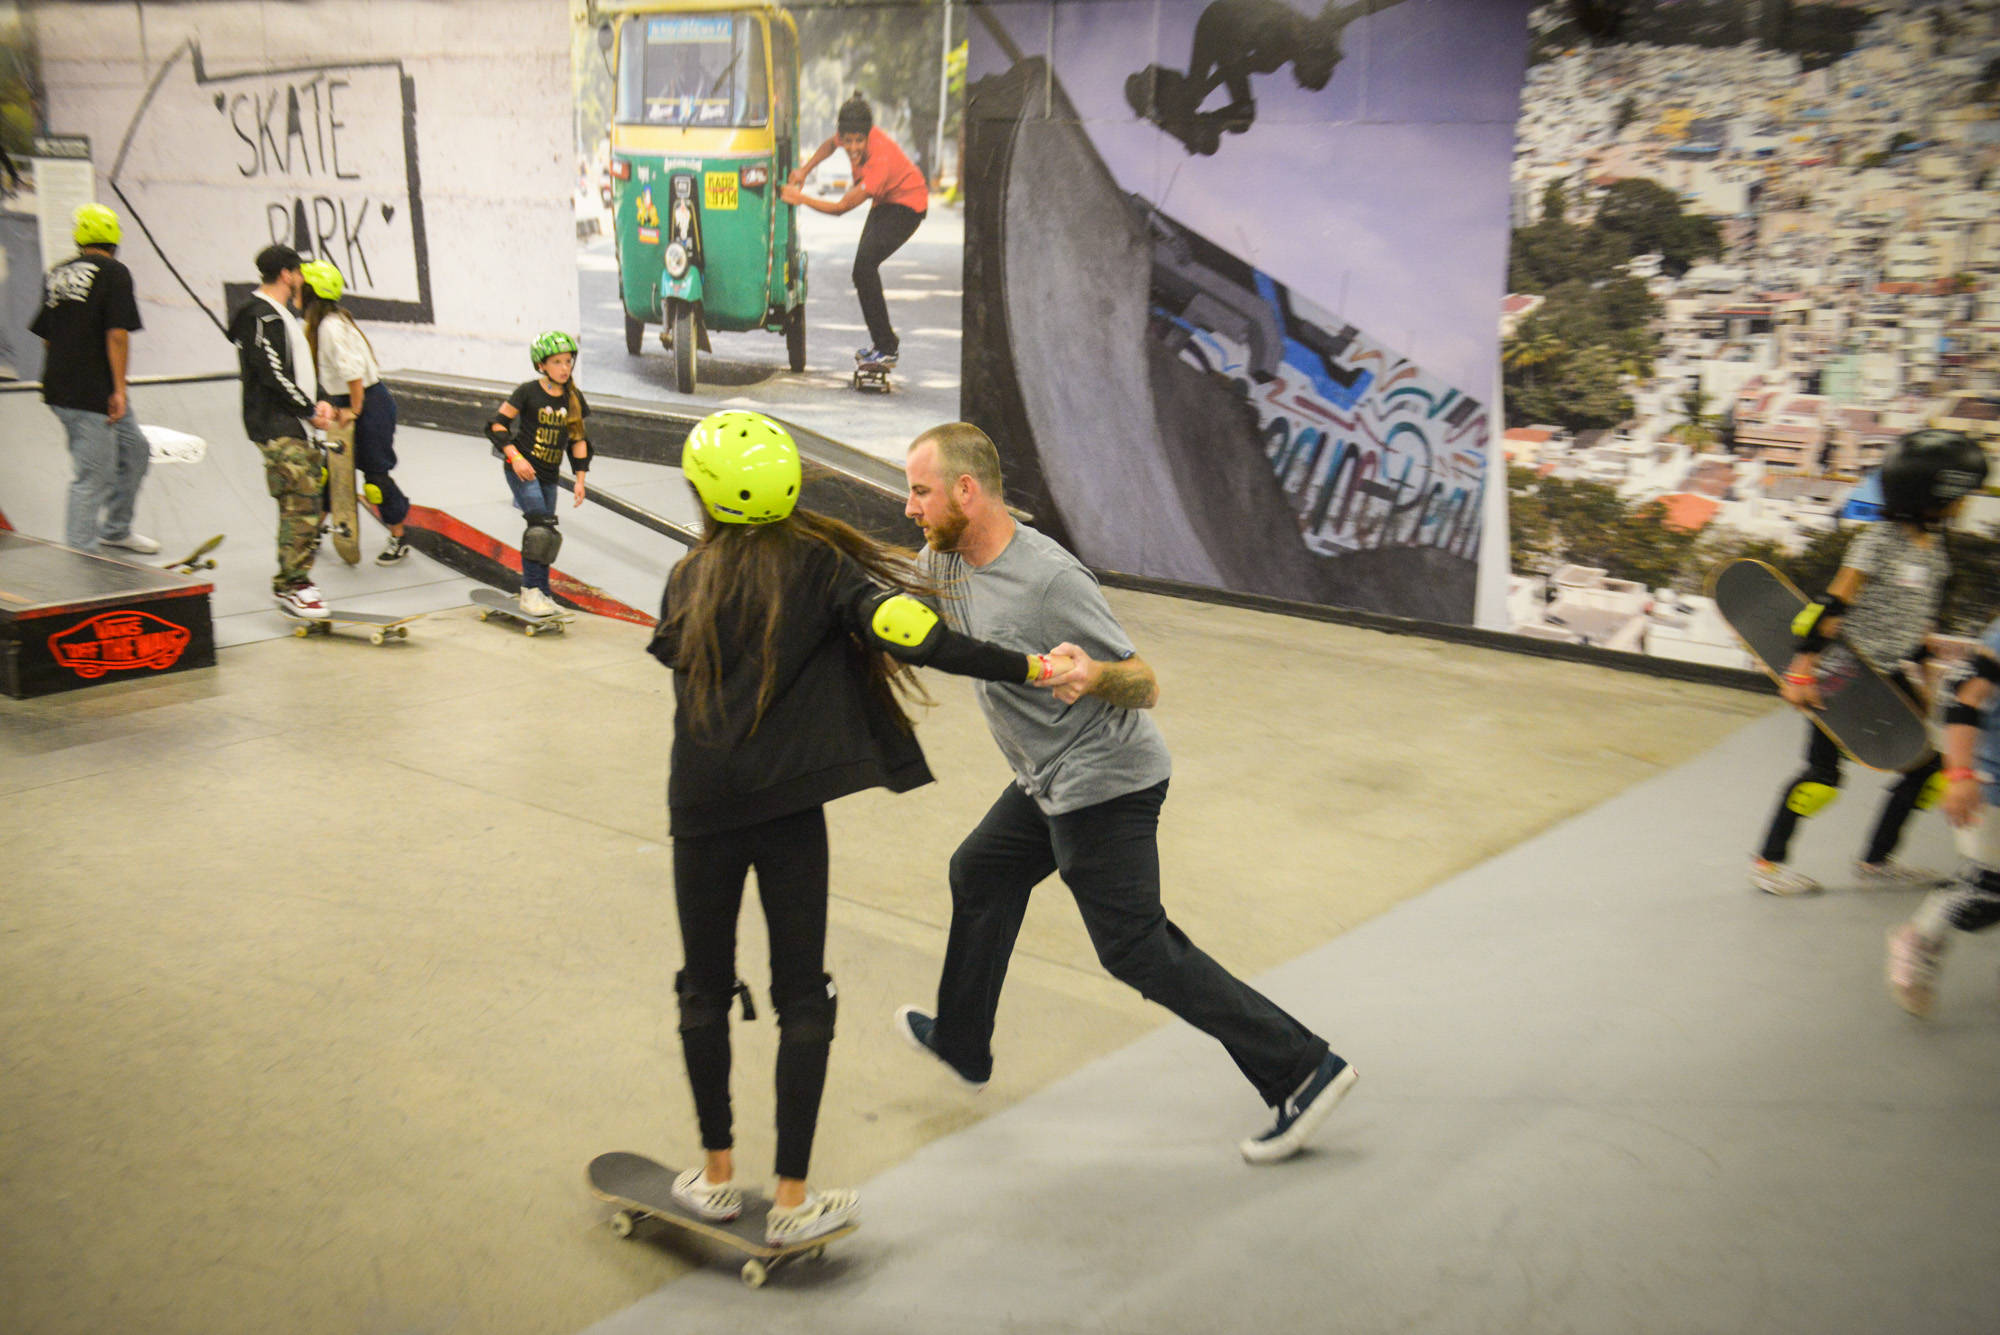 Get On Board: Vans Park in Orange -- Photos